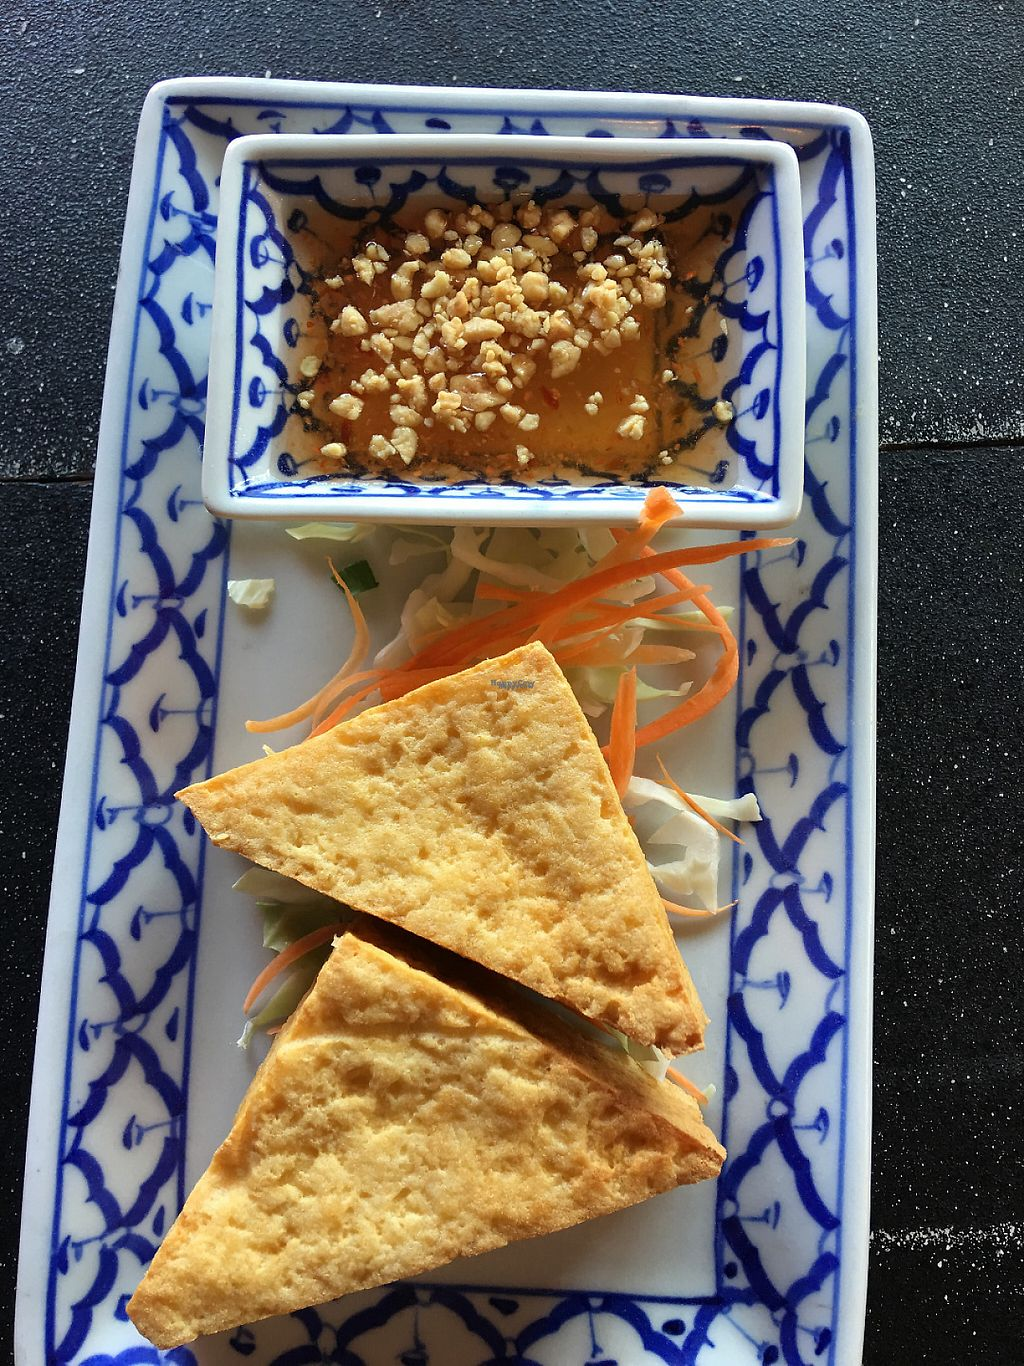 """Photo of Bangkok Happy Bowl  by <a href=""""/members/profile/myra975"""">myra975</a> <br/>Fried Tofu  <br/> March 14, 2017  - <a href='/contact/abuse/image/78330/236531'>Report</a>"""